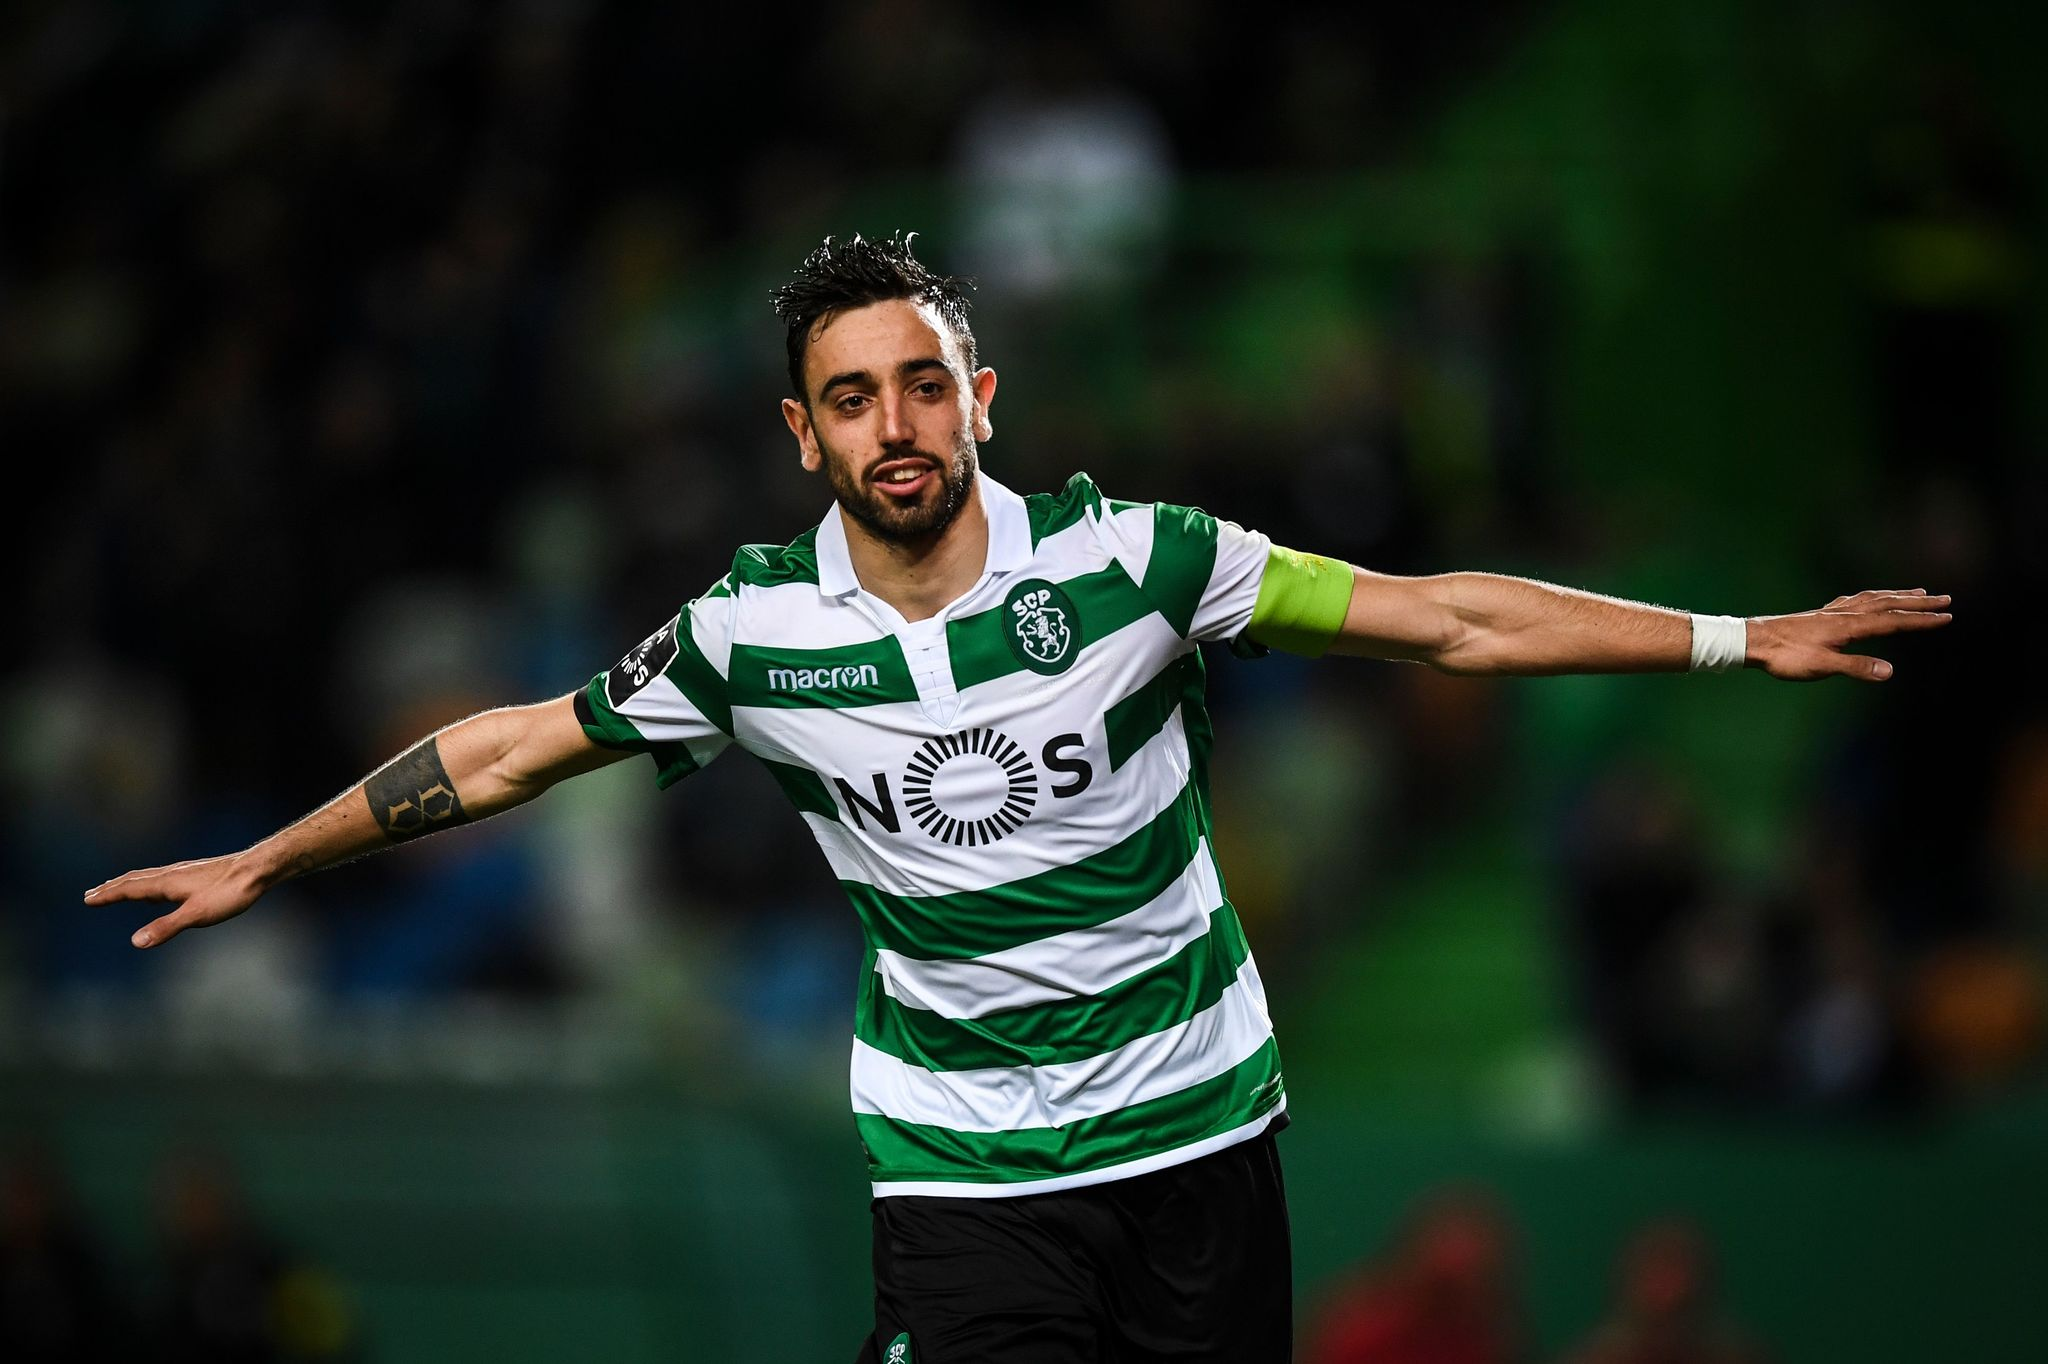 (FILES) In this file photo taken on March 03, 2019 Sportings Portuguese midfielder lt;HIT gt;Bruno lt;/HIT gt; lt;HIT gt;Fernandes lt;/HIT gt; celebrates after scoring a goal during the Portuguese league football match between Sporting CP and Portimonense SC at the Jose Alvalade stadium in Lisbon. - Manchester United have agreed a deal to sign Portuguese international midfielder lt;HIT gt;Bruno lt;/HIT gt; lt;HIT gt;Fernandes lt;/HIT gt; from Sporting Lisbon, the Premier League club announced on January 29, 2020. (Photo by PATRICIA DE MELO MOREIRA / AFP)